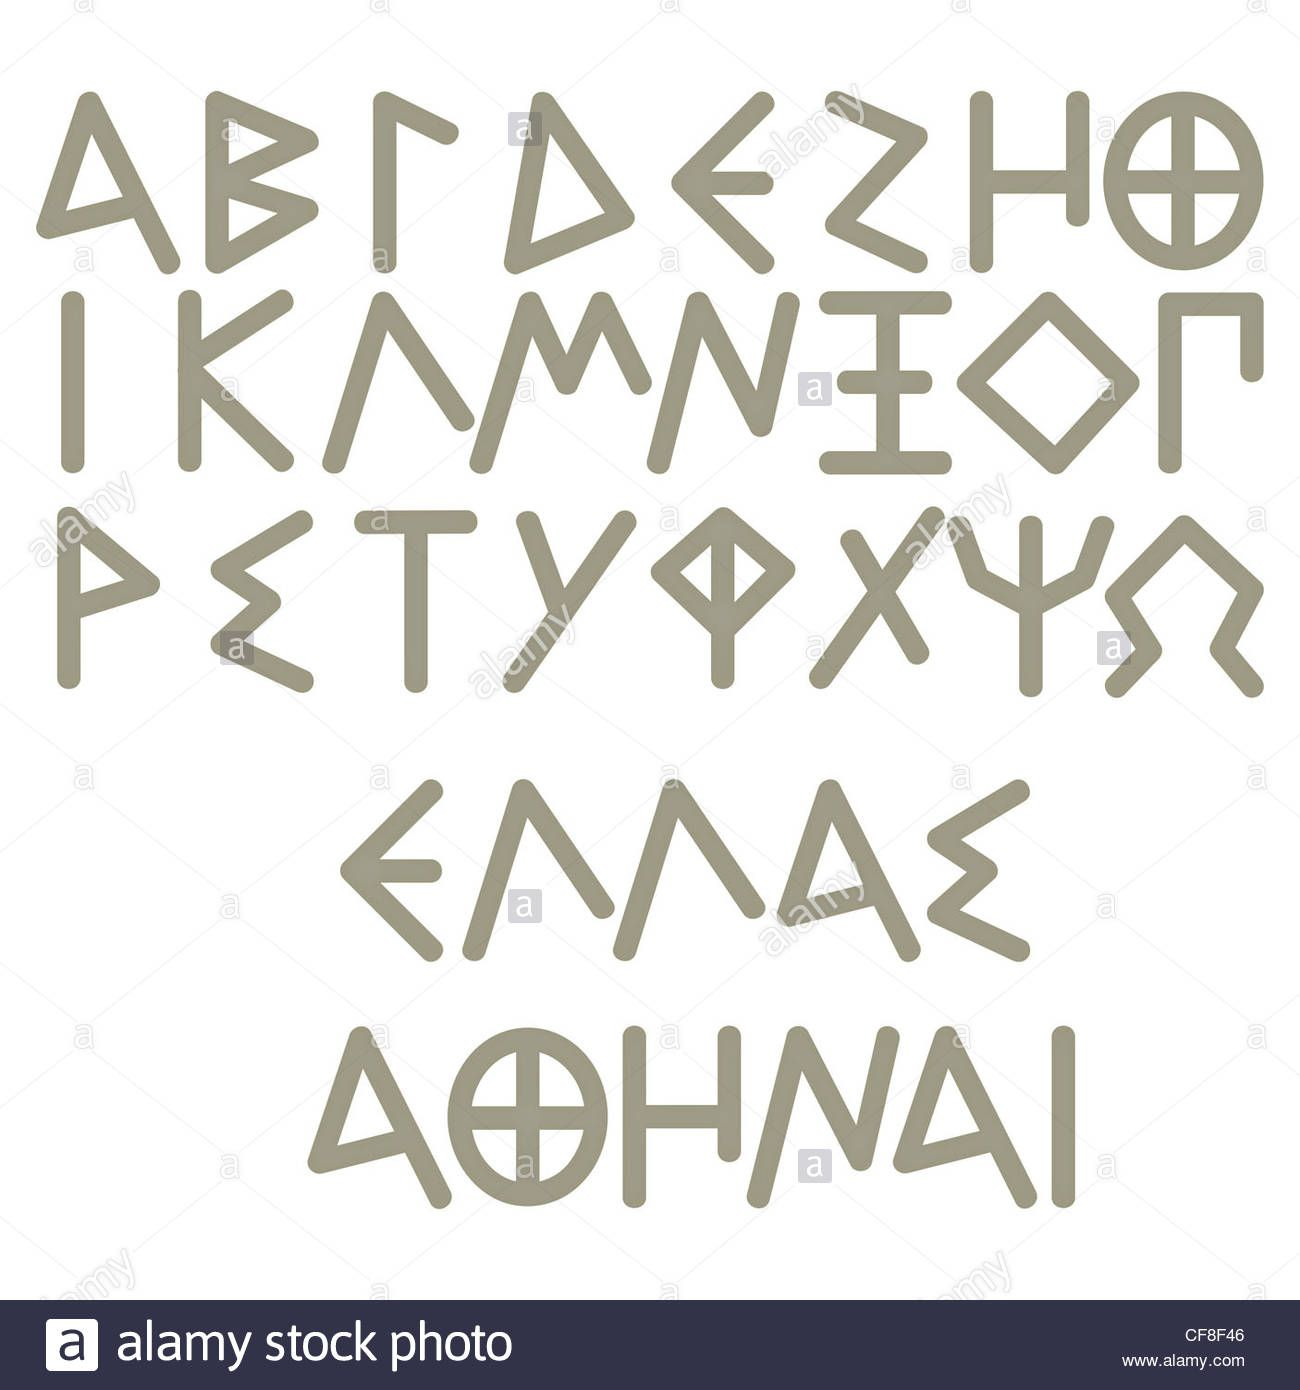 Modern Greek Alphabet In The Ancient Greek Style Stock Photo Royalty Free Image 43828070 Alamy Greek Font Greek Alphabet Lettering Alphabet